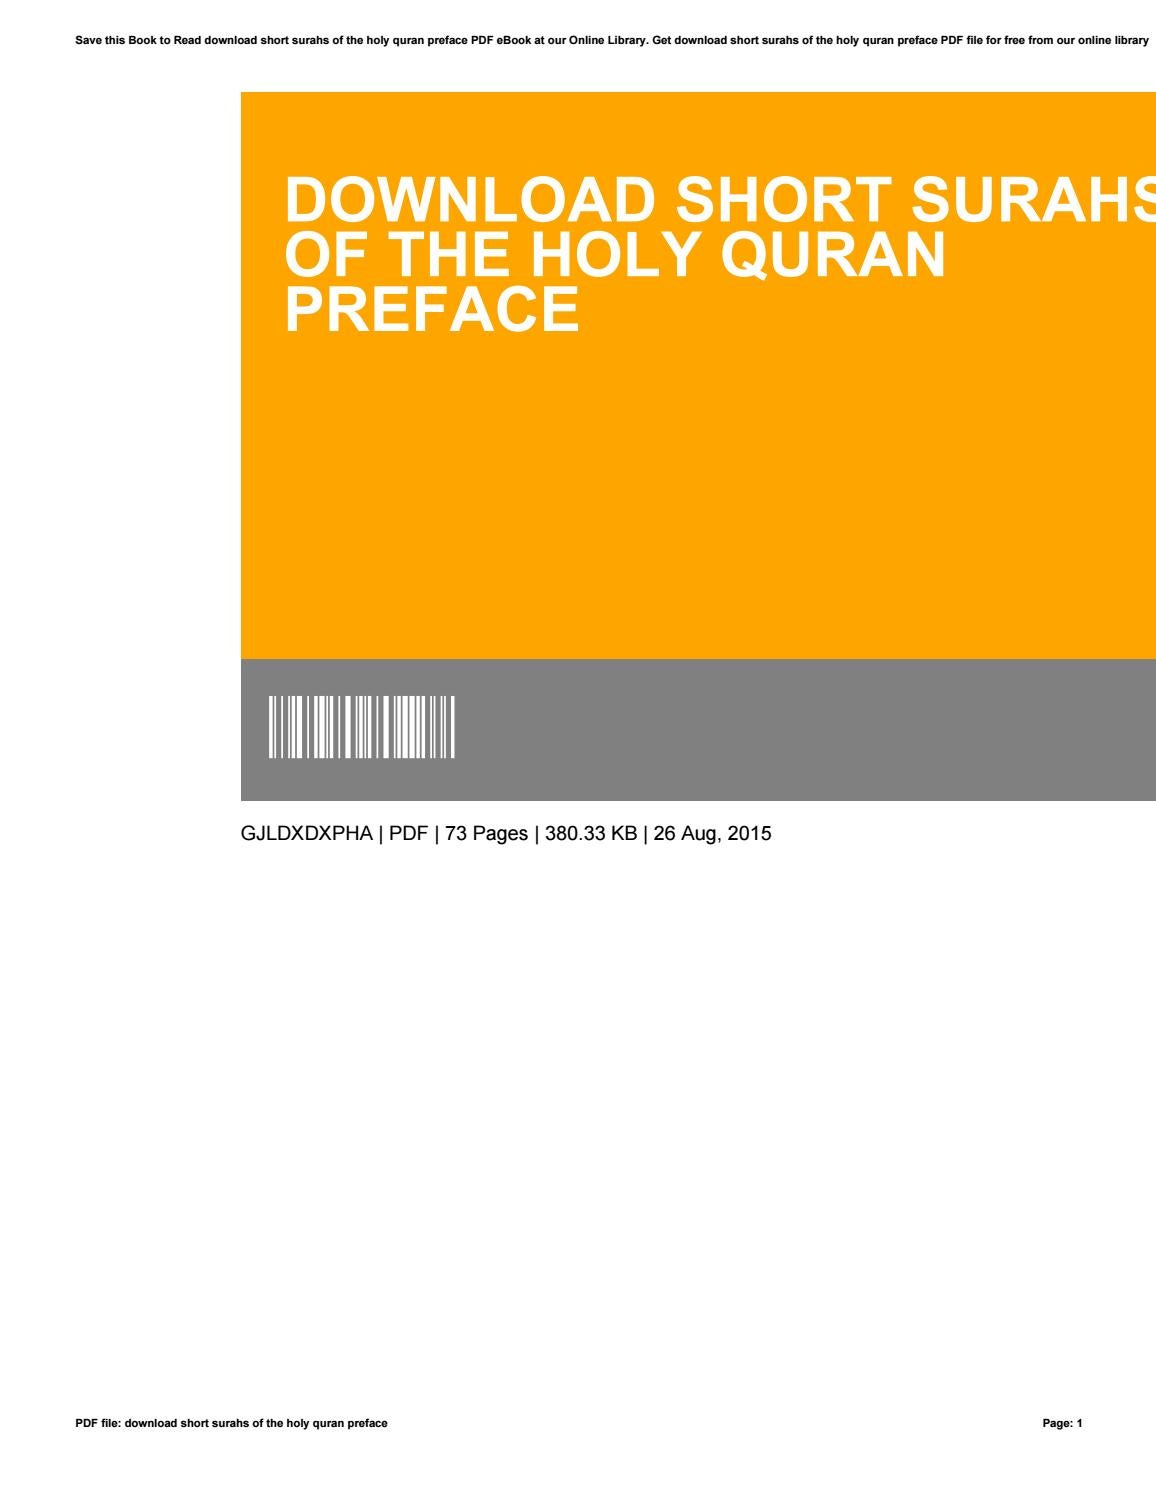 Download short surahs of the holy quran preface by